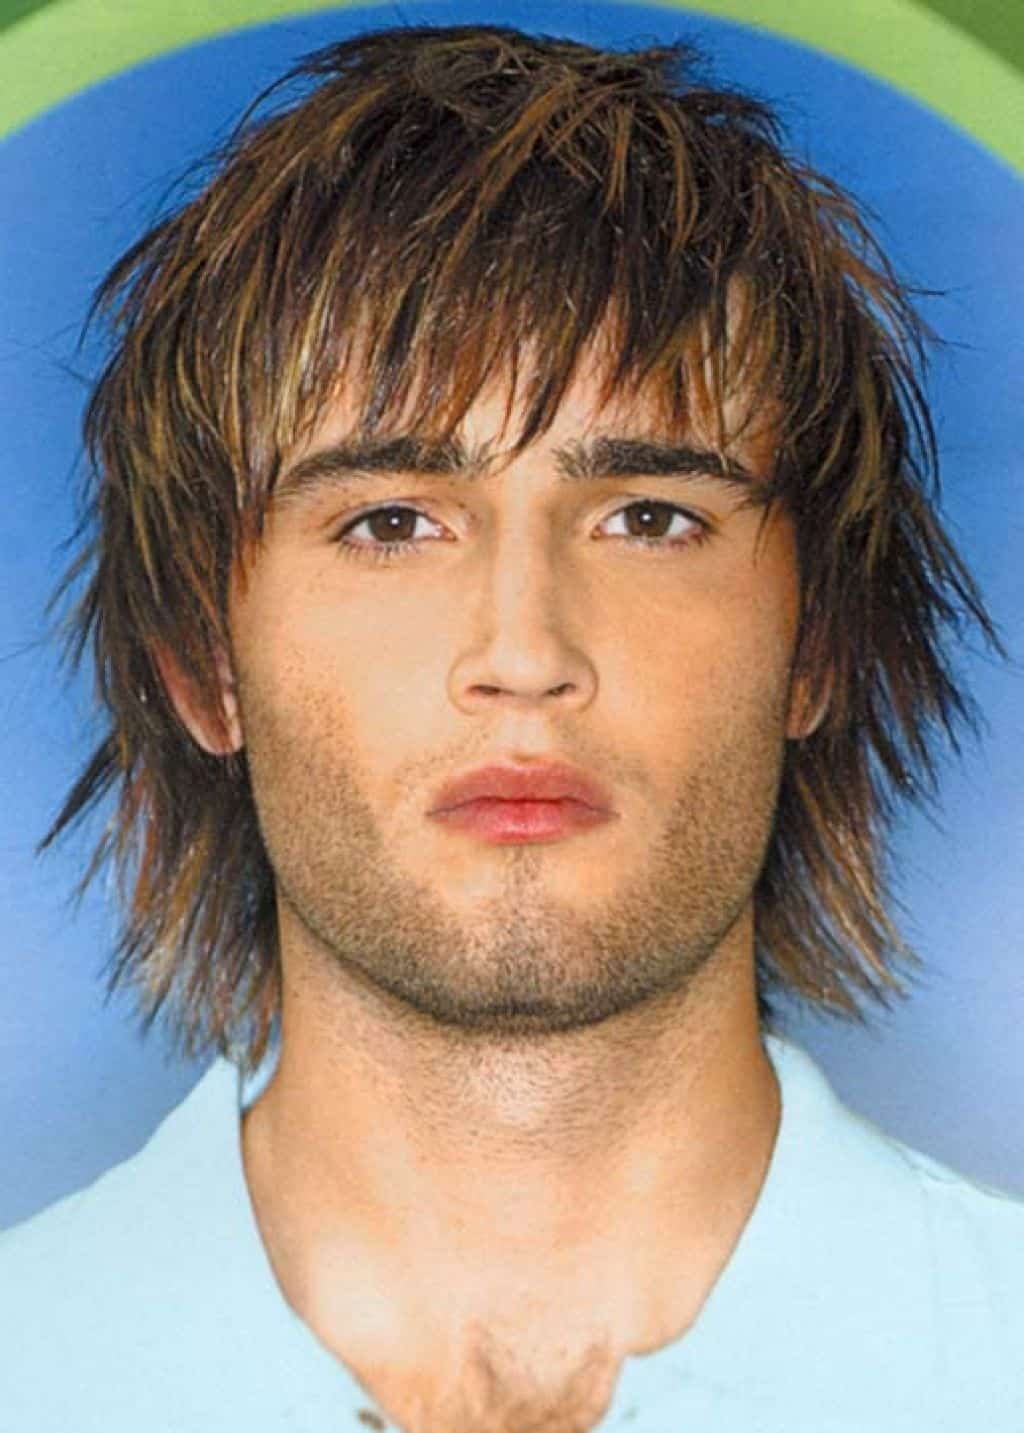 how to style shaggy hair men things you should to get a shaggy haircut 5947 | shaggy hairstyle 6